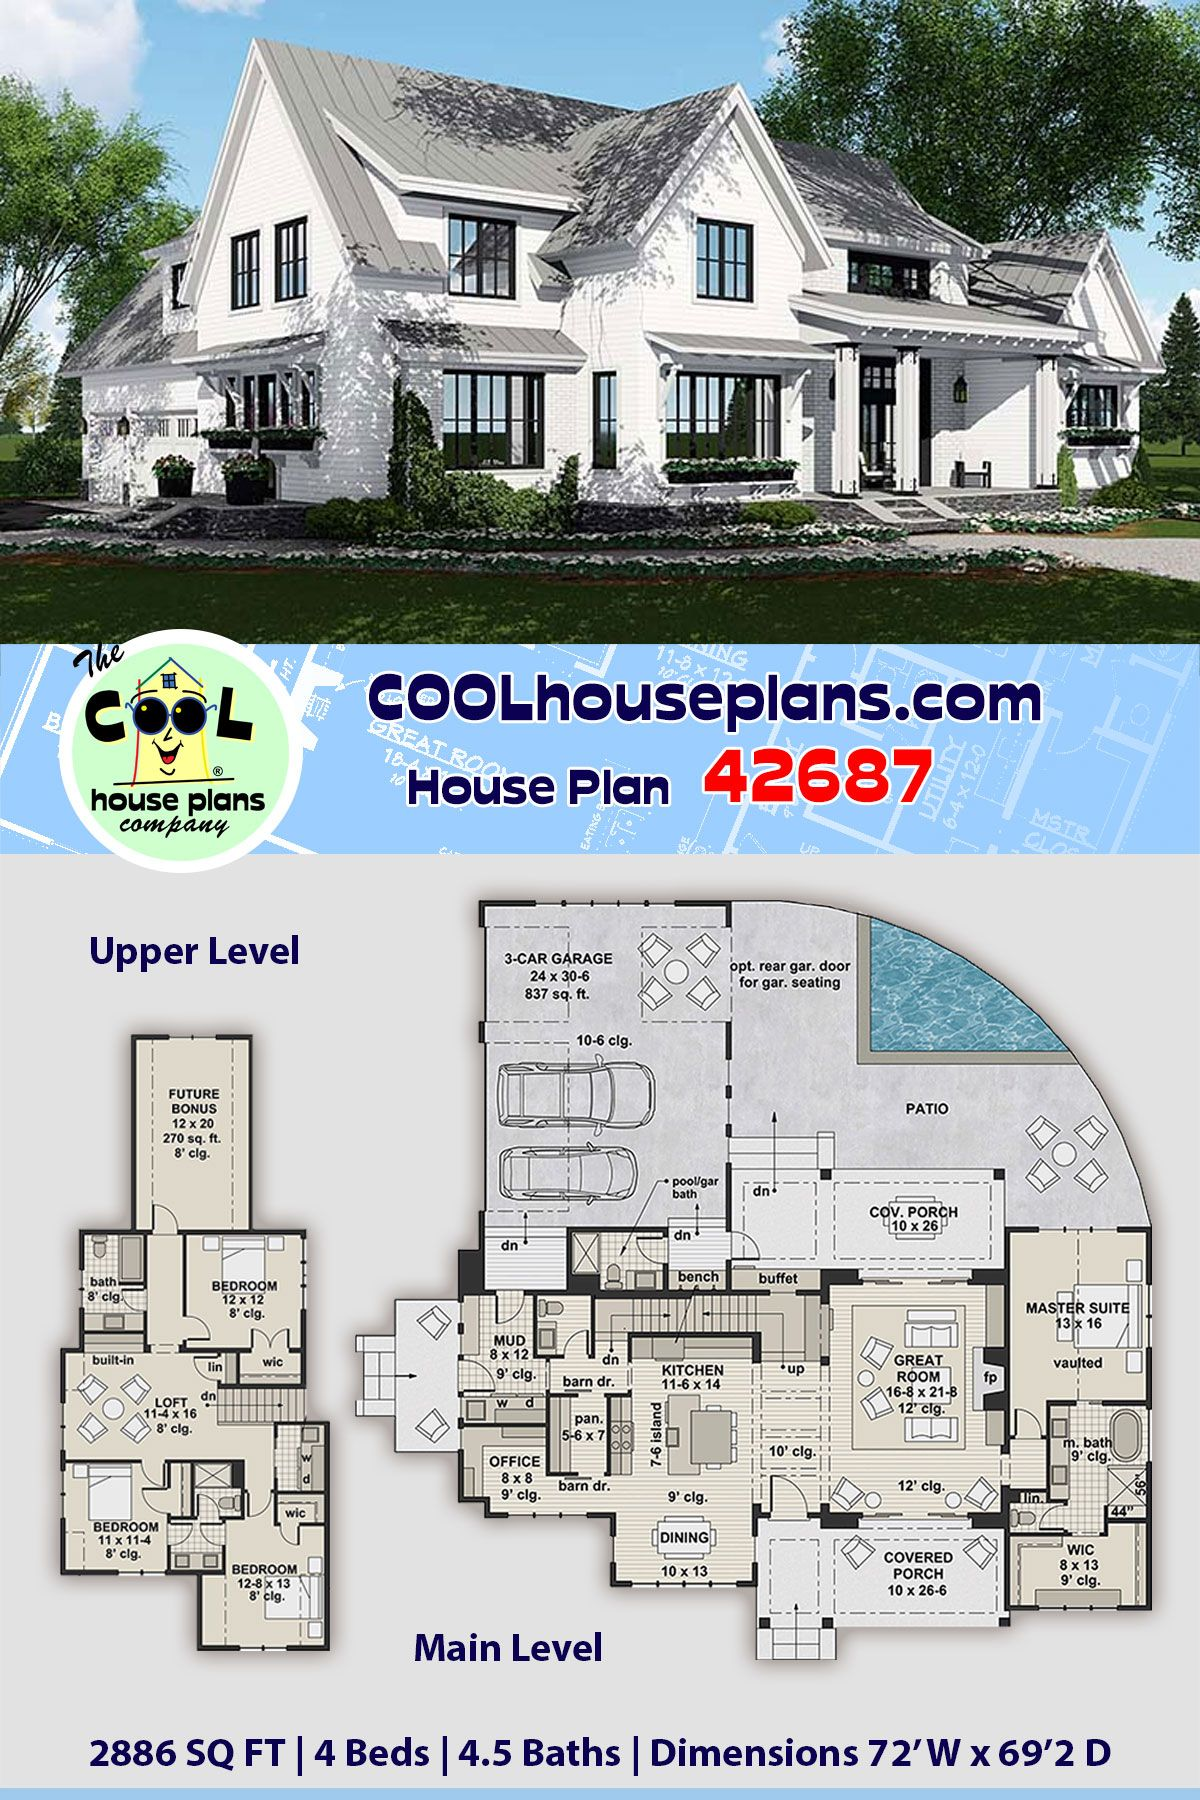 Traditional Style House Plan 42687 With 4 Bed 5 Bath 3 Car Garage In 2020 Pool House Plans House Plans Farmhouse House Plans